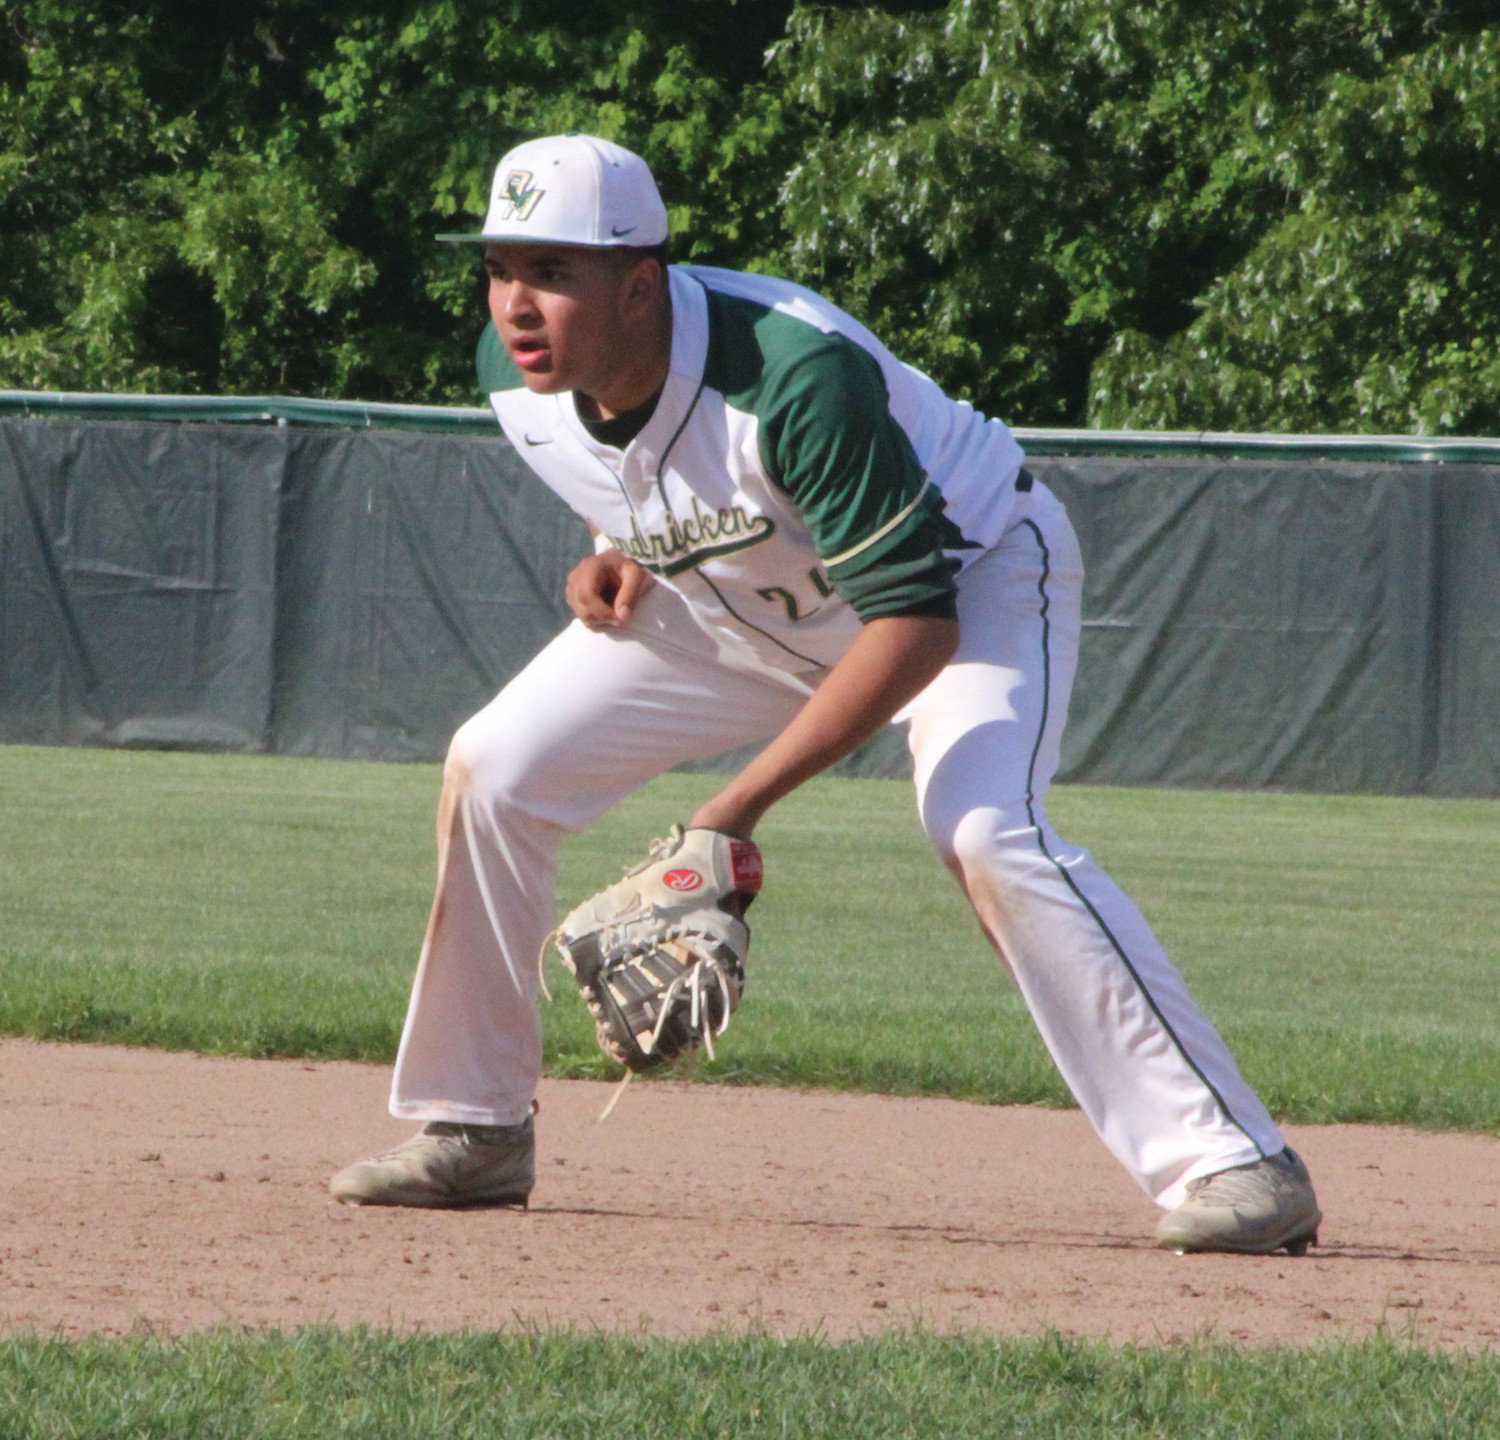 Bishop Hendricken first baseman Joseph Ortiz gets ready to make a play.